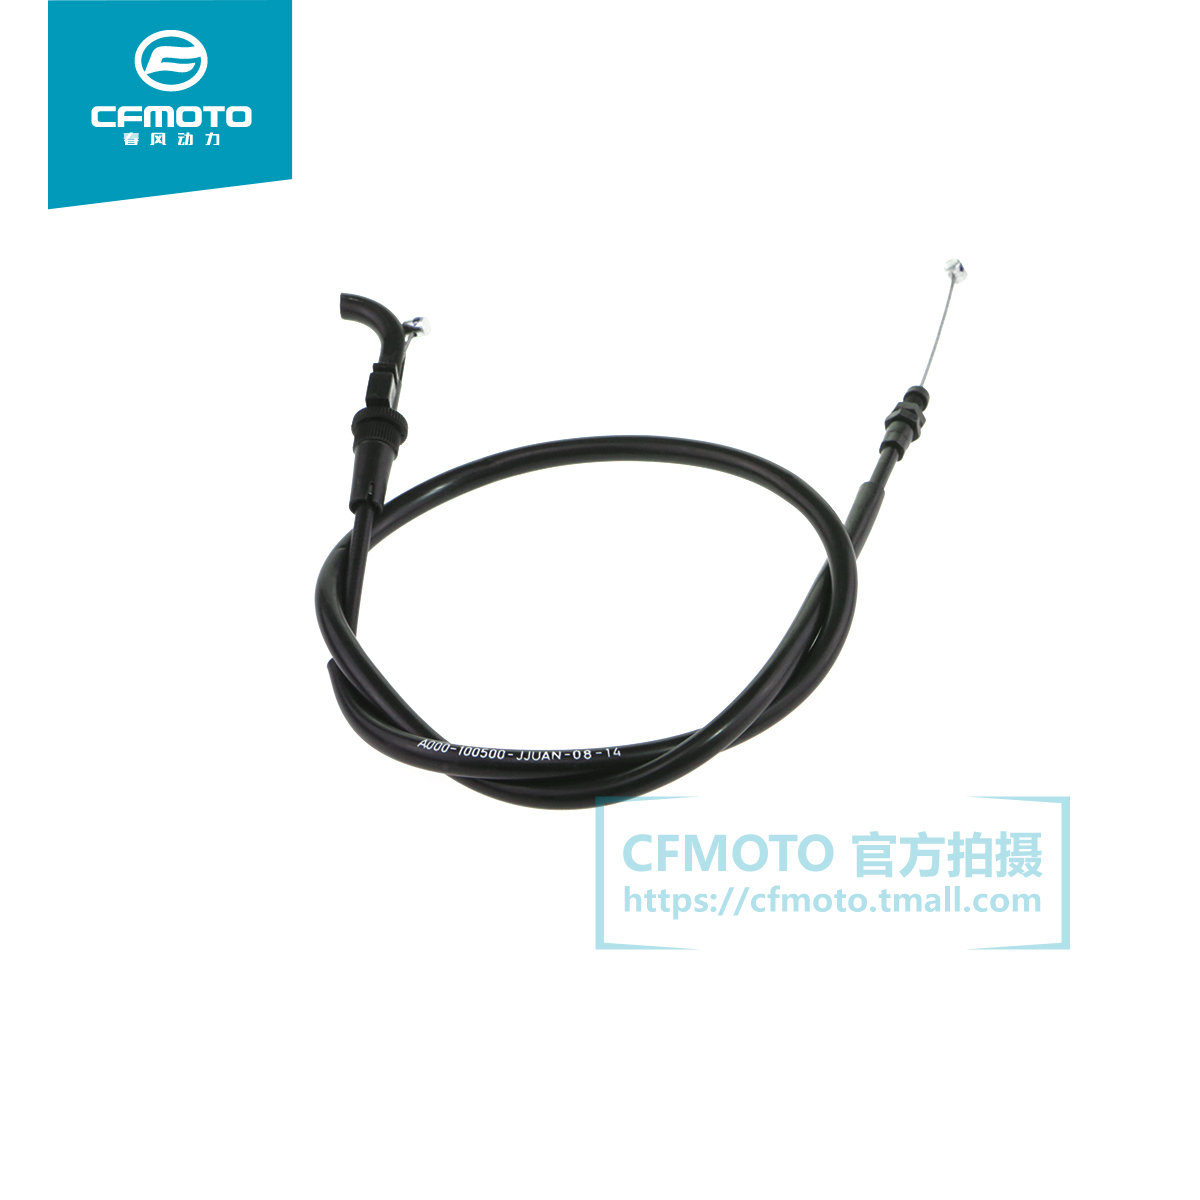 Cfmoto spring cf650 power/cf650nk motorcycle accessories adjustable throttle cable throttle cable